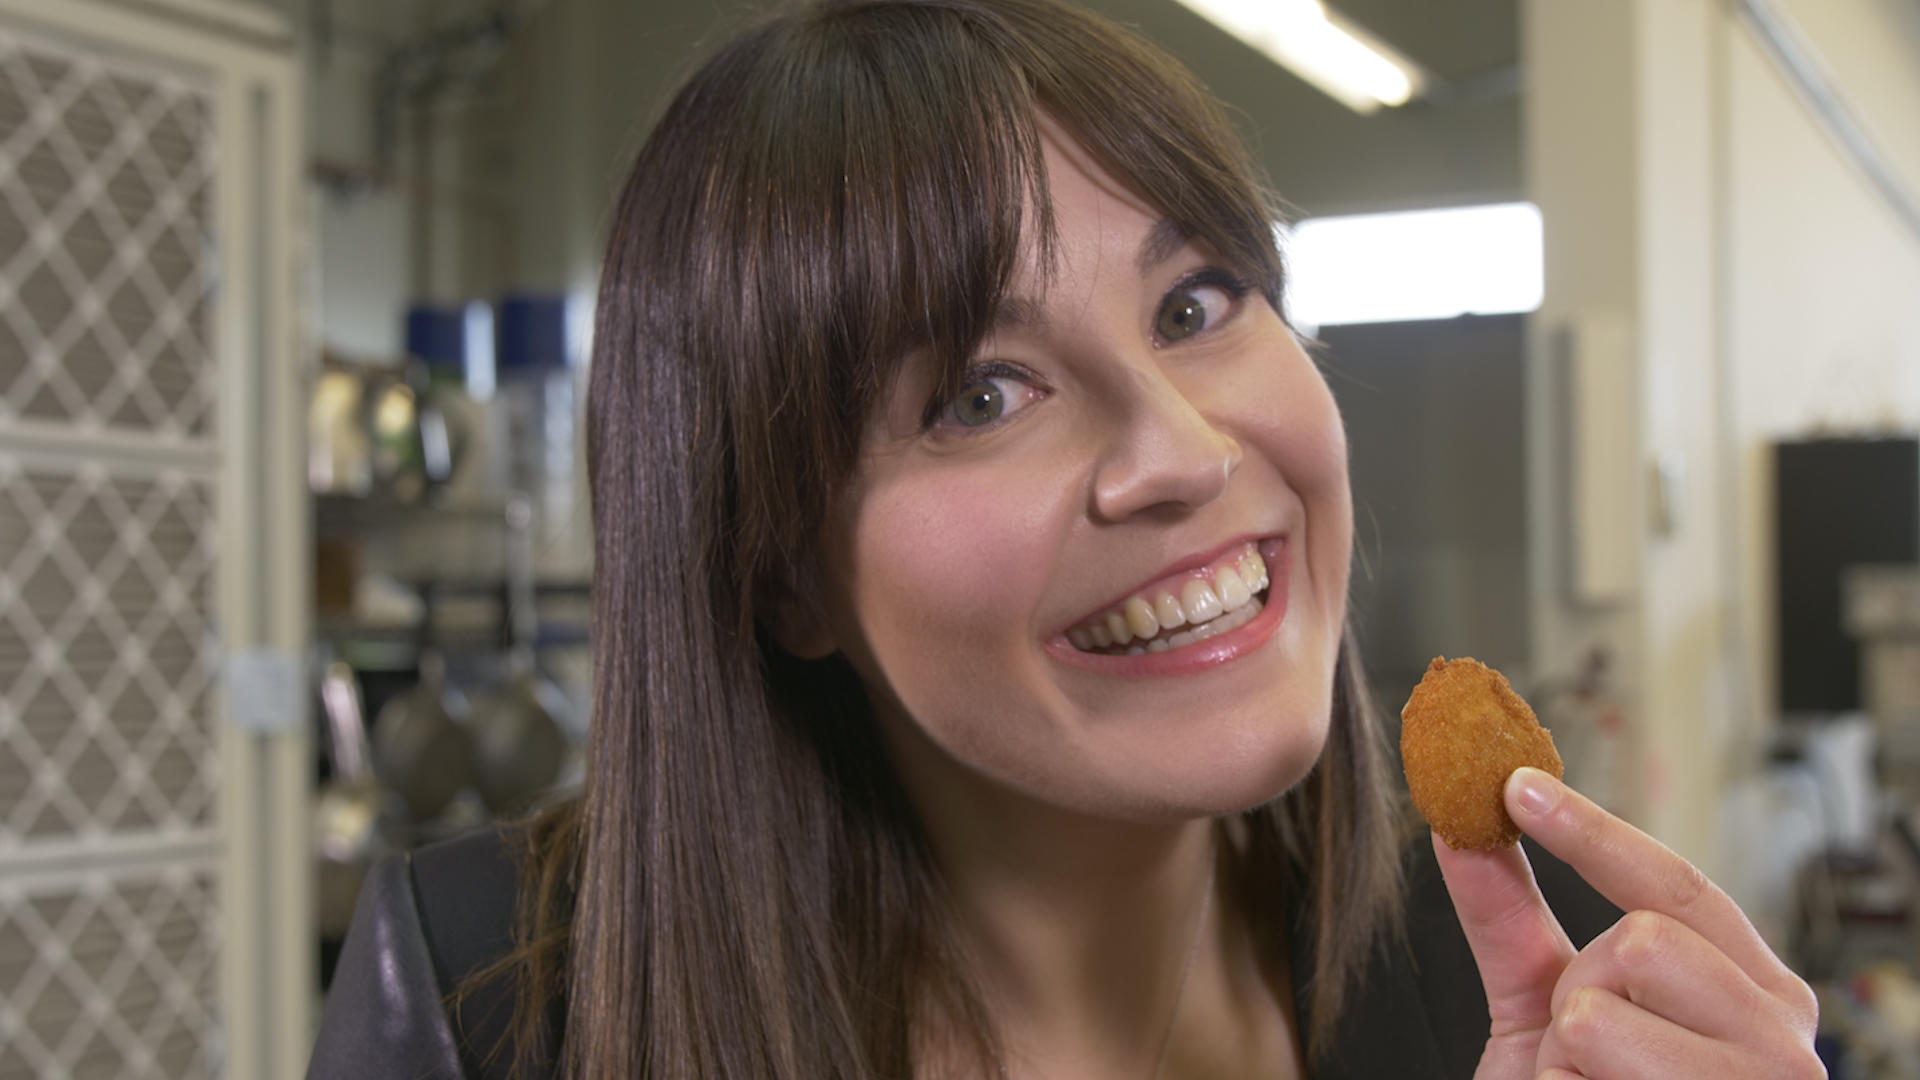 Video: Trying a lab-grown chicken nugget